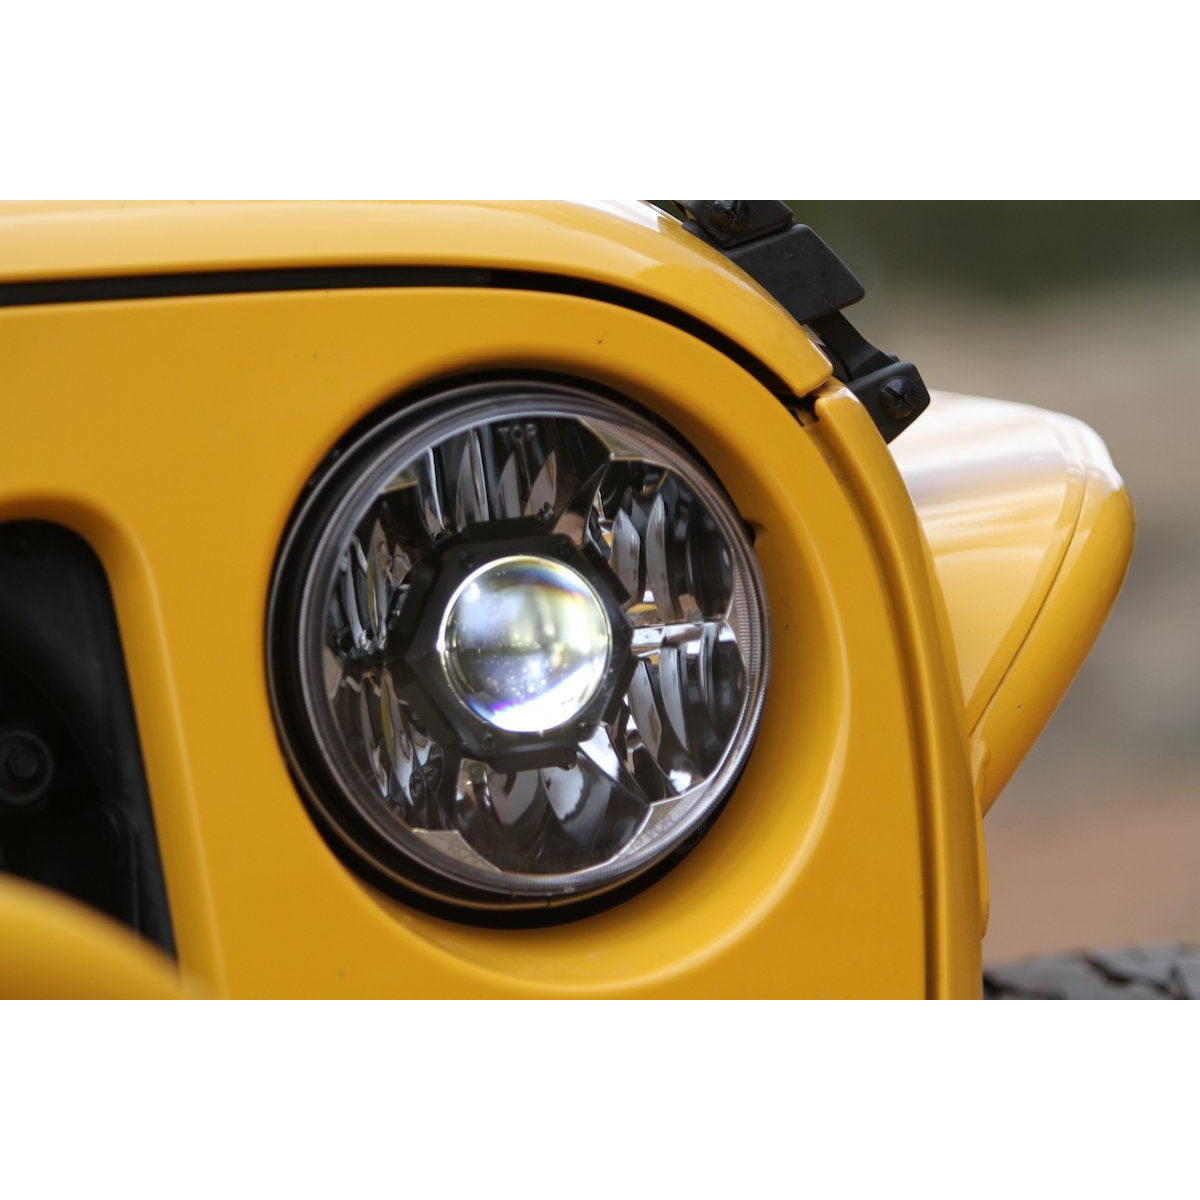 "Gravity® LED Pro 7"" Headlight for Jeep DOT Compliant"